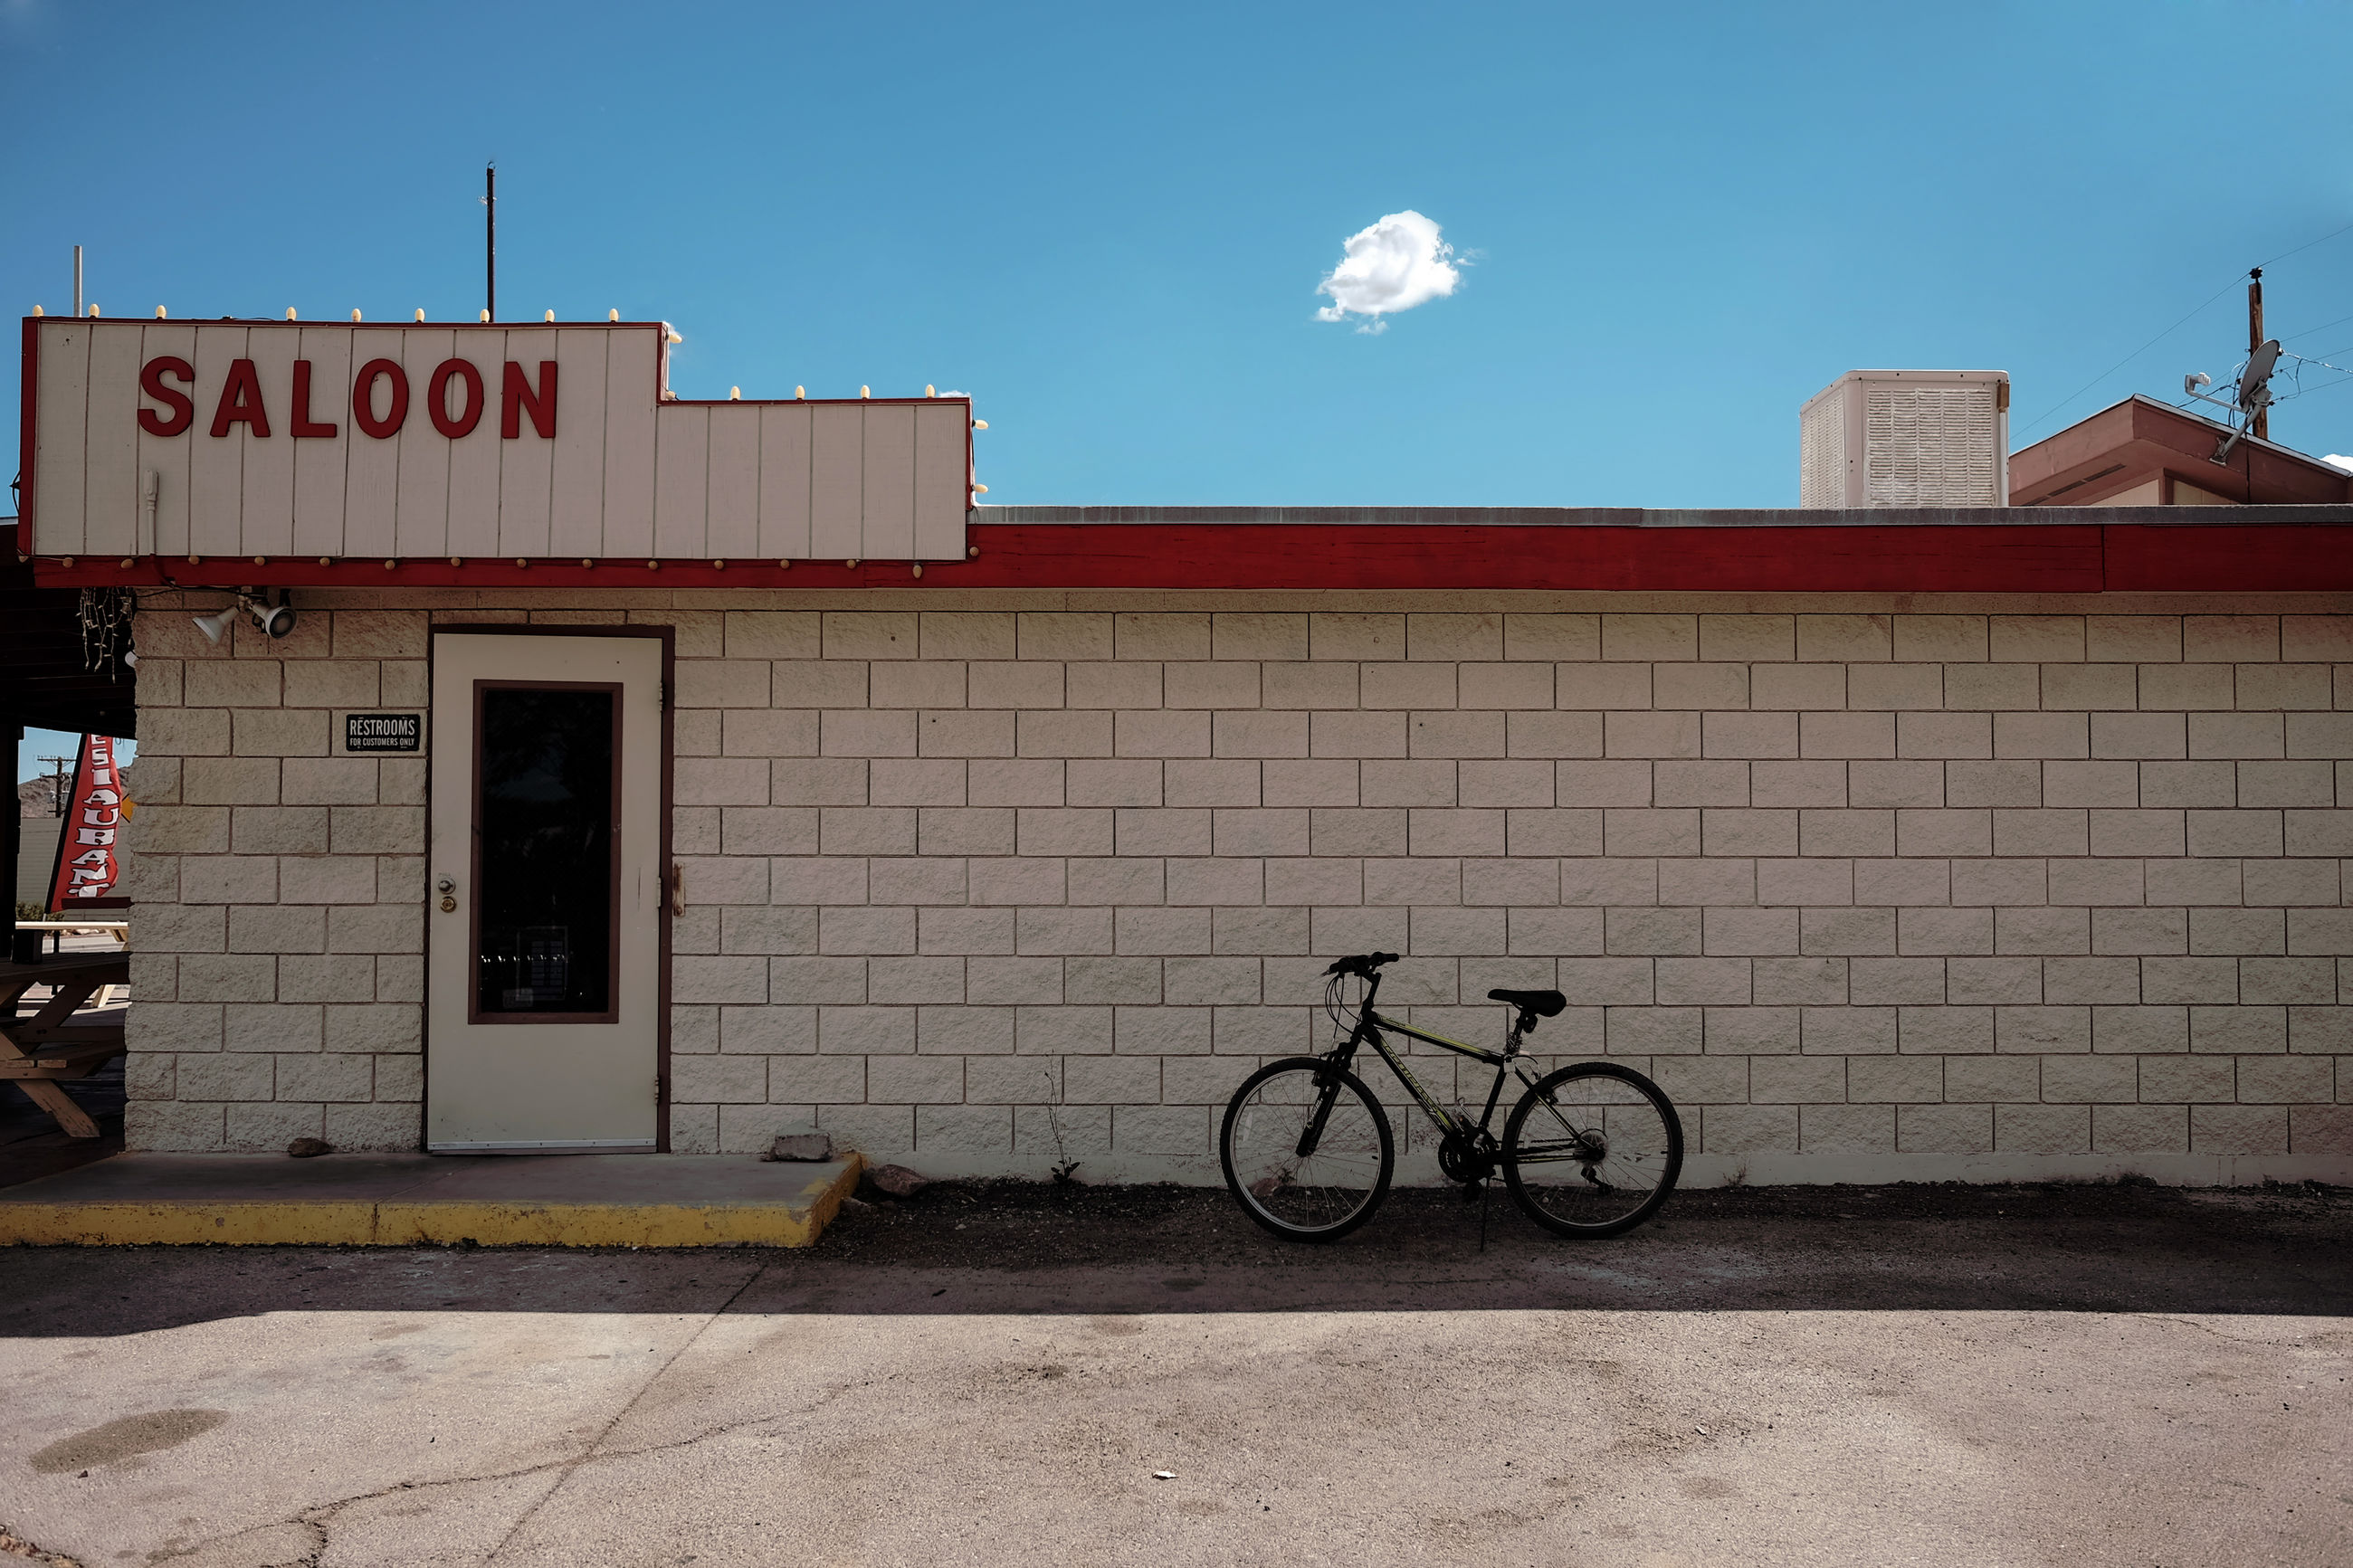 bicycle, architecture, building exterior, built structure, outdoors, text, transportation, day, sky, no people